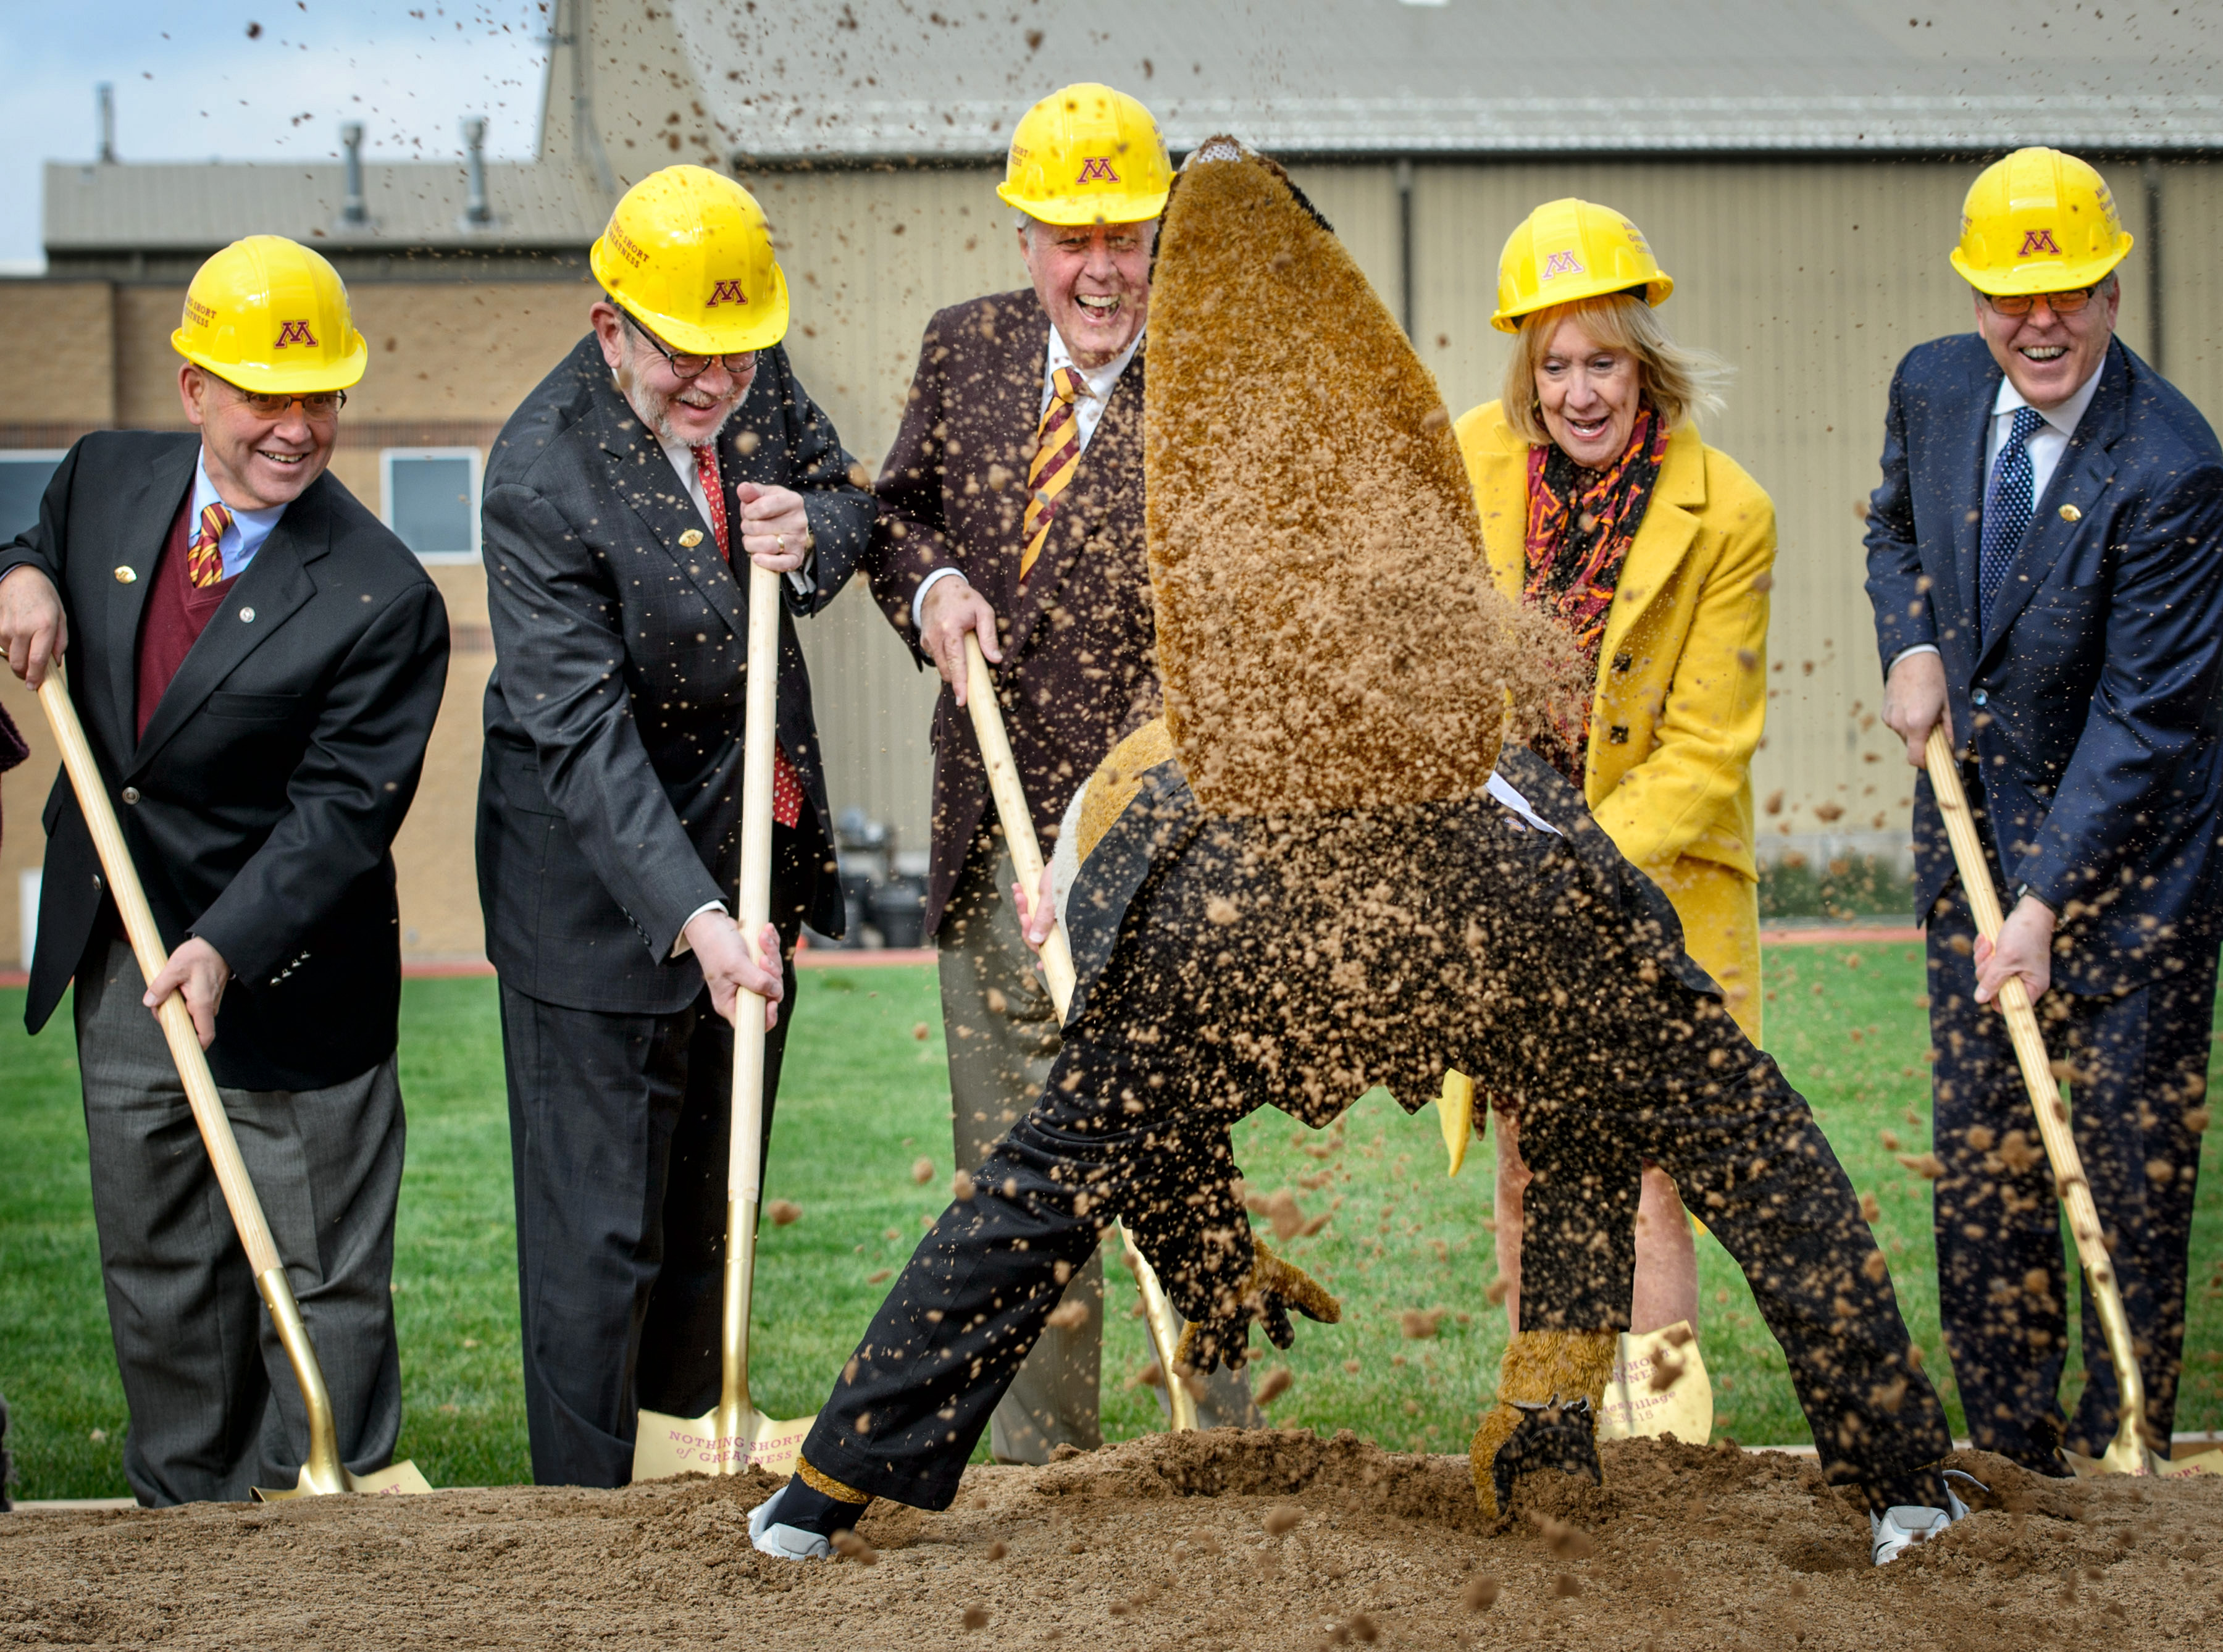 """University of Minnesota mascot """"Goldy Gopher"""" throws dirt towards photographers at groundbreaking ceremonies for the """"athletes village"""" Friday, Oct. 30, 2015, at the University of Minnesota in Minneapolis. From left, taking part in the ceremonies are rege"""